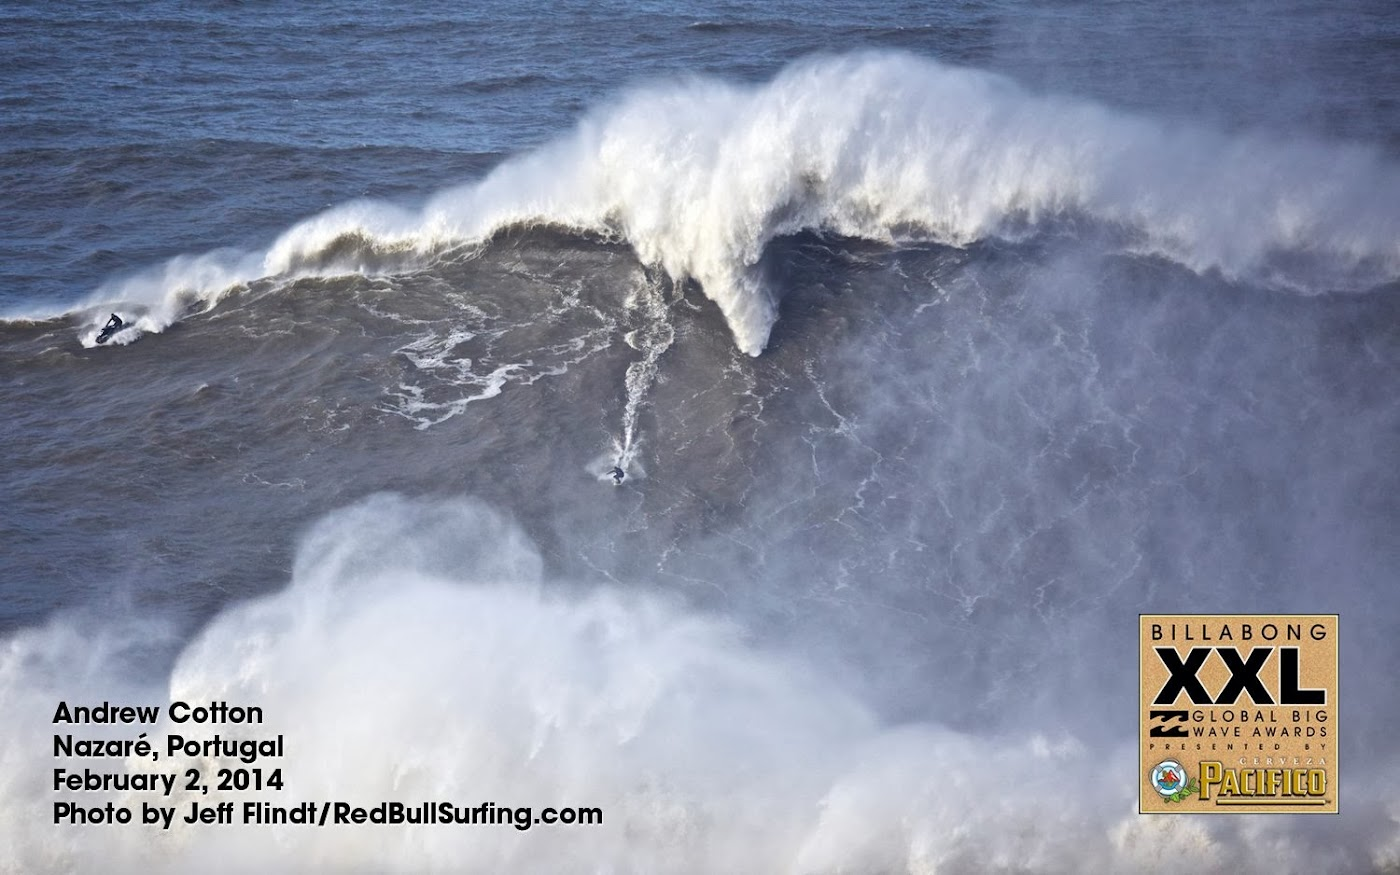 andrew cotton nazare portugal  febrero